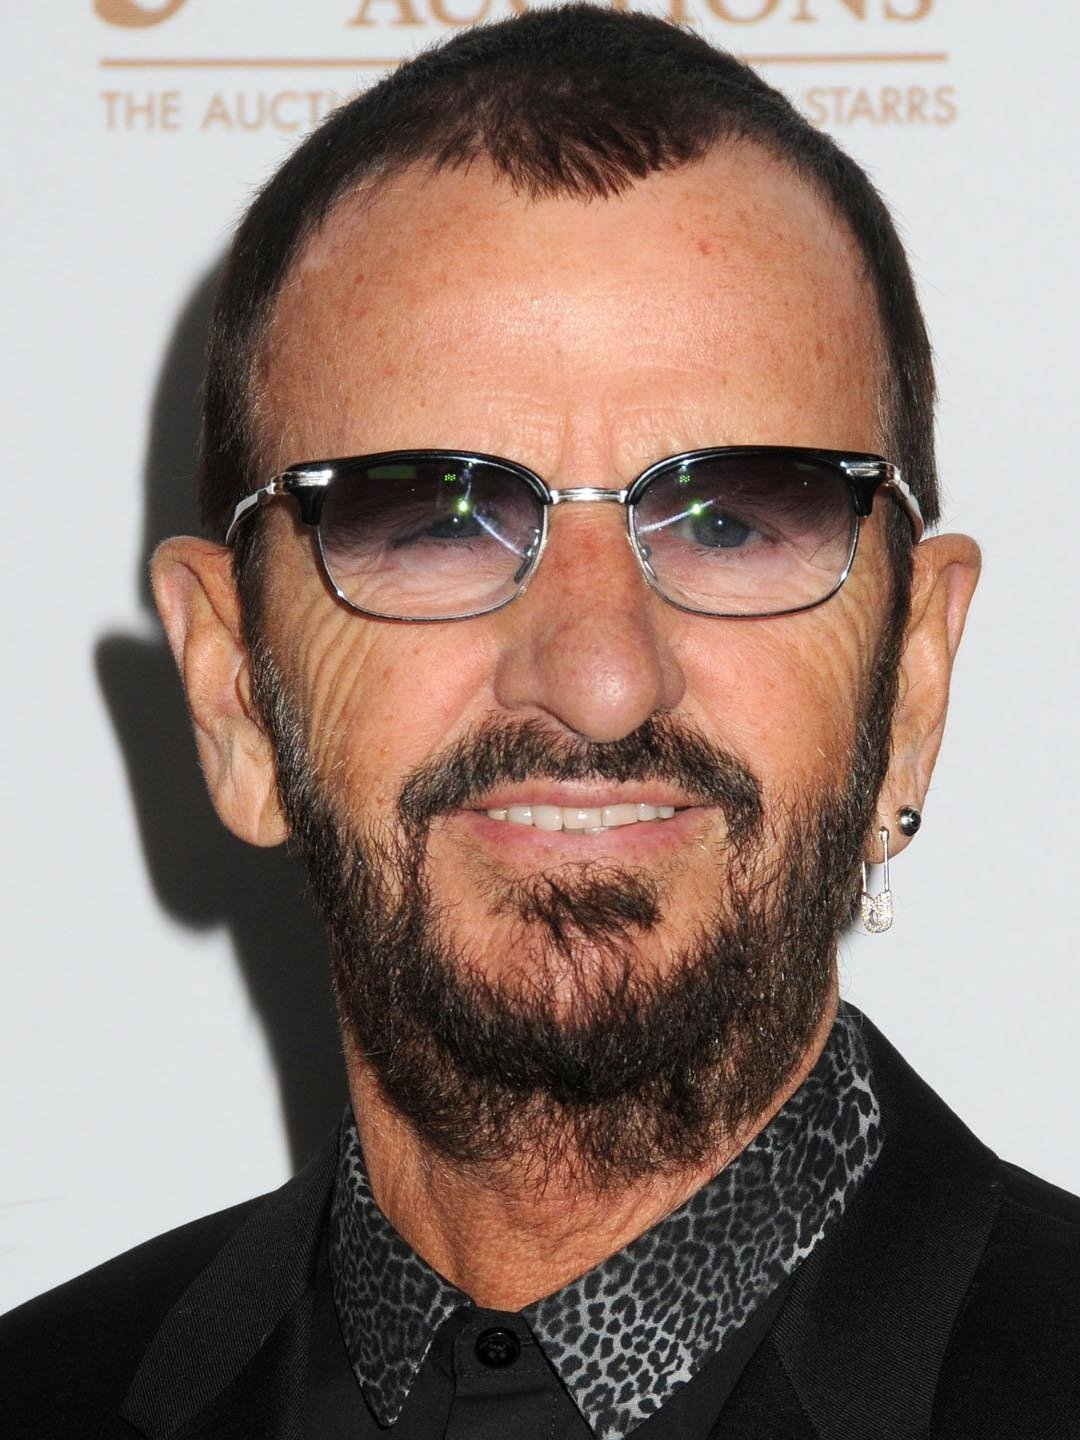 Ringo Starr, drummer of Beatles was hospitalized due to heart problems